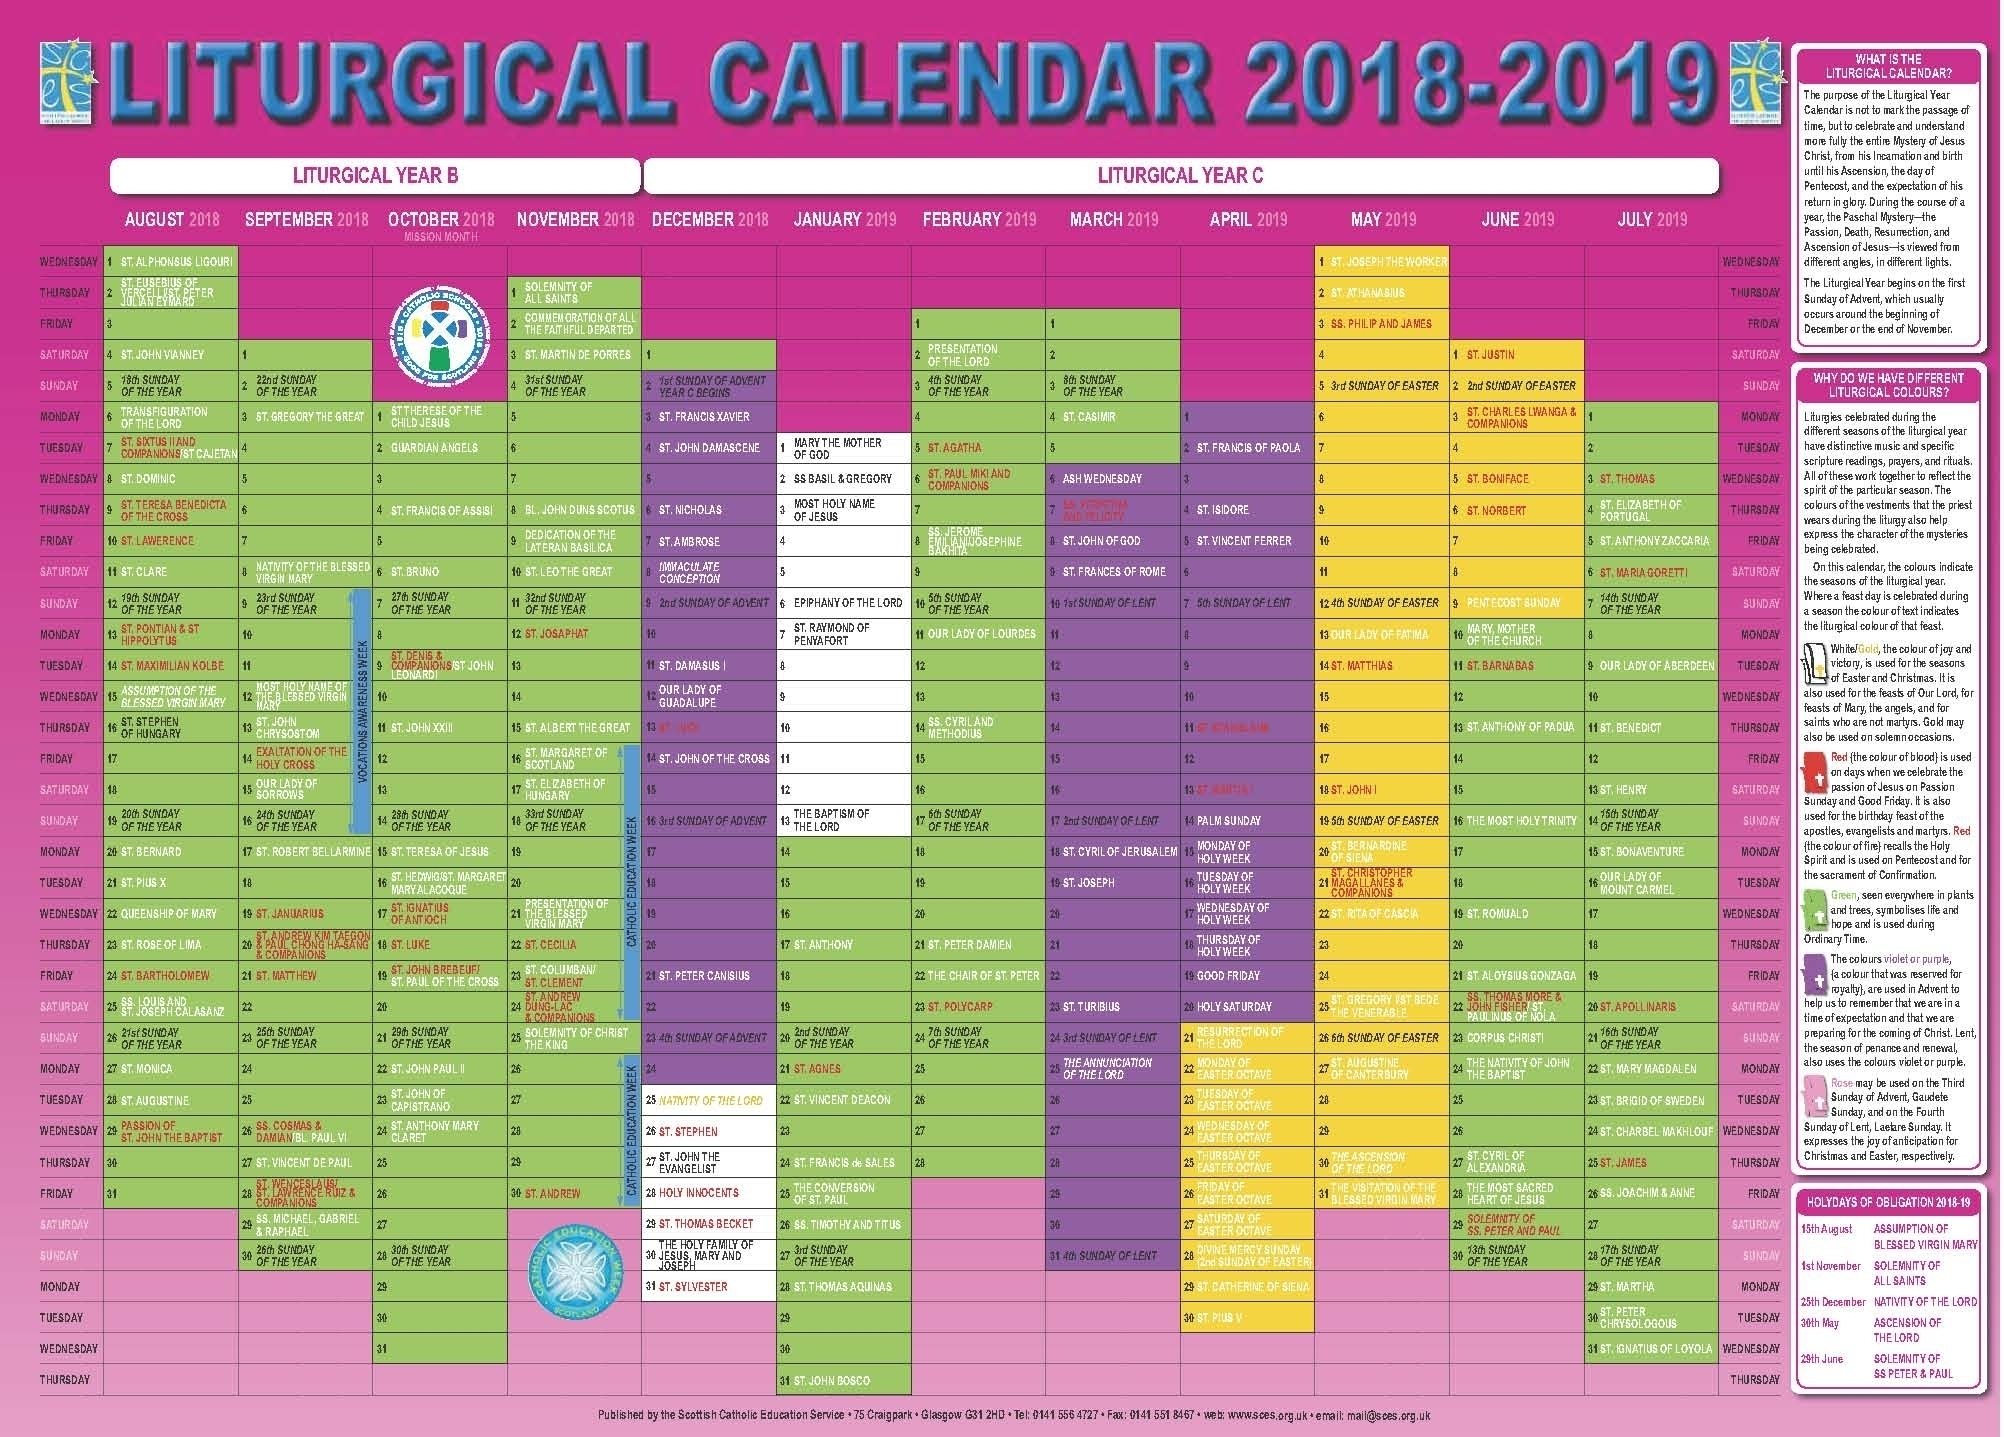 Catholic Liturgical Calendar 2020 Pdf - Calendar Inspiration for Looking For A Catholic Liturgical Calendar For 2020